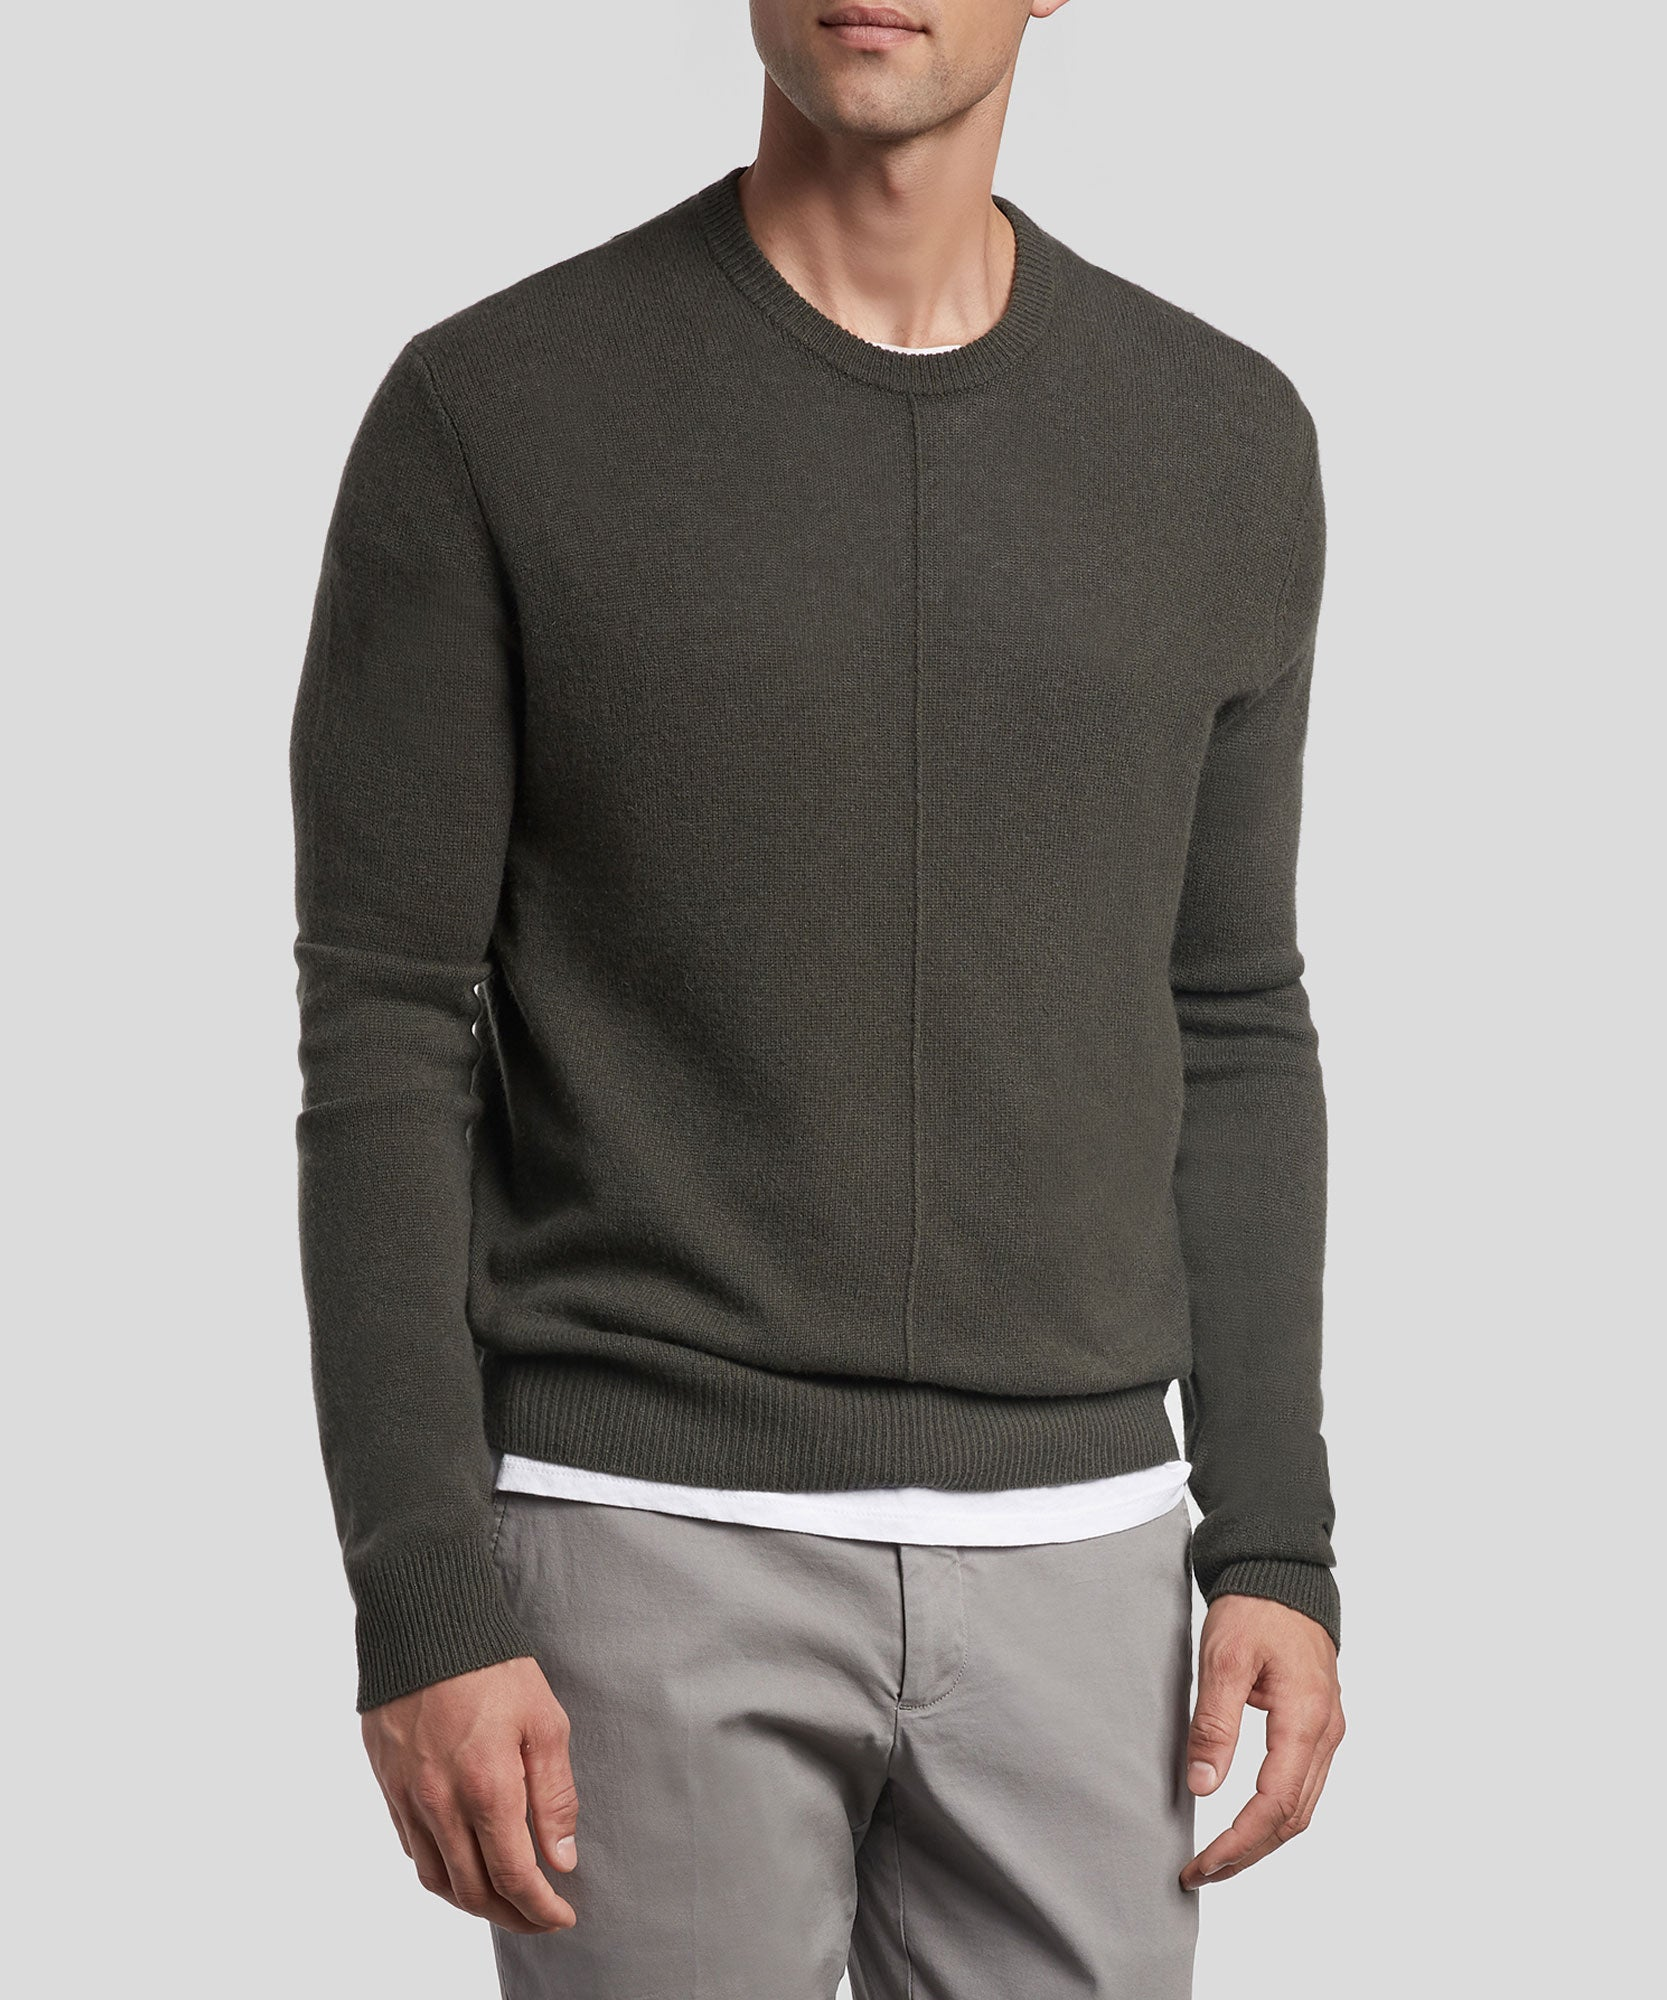 Jungle Cashmere Exposed Seam Crew Neck Sweater - Men's Cashmere Sweater by ATM Anthony Thomas Melillo